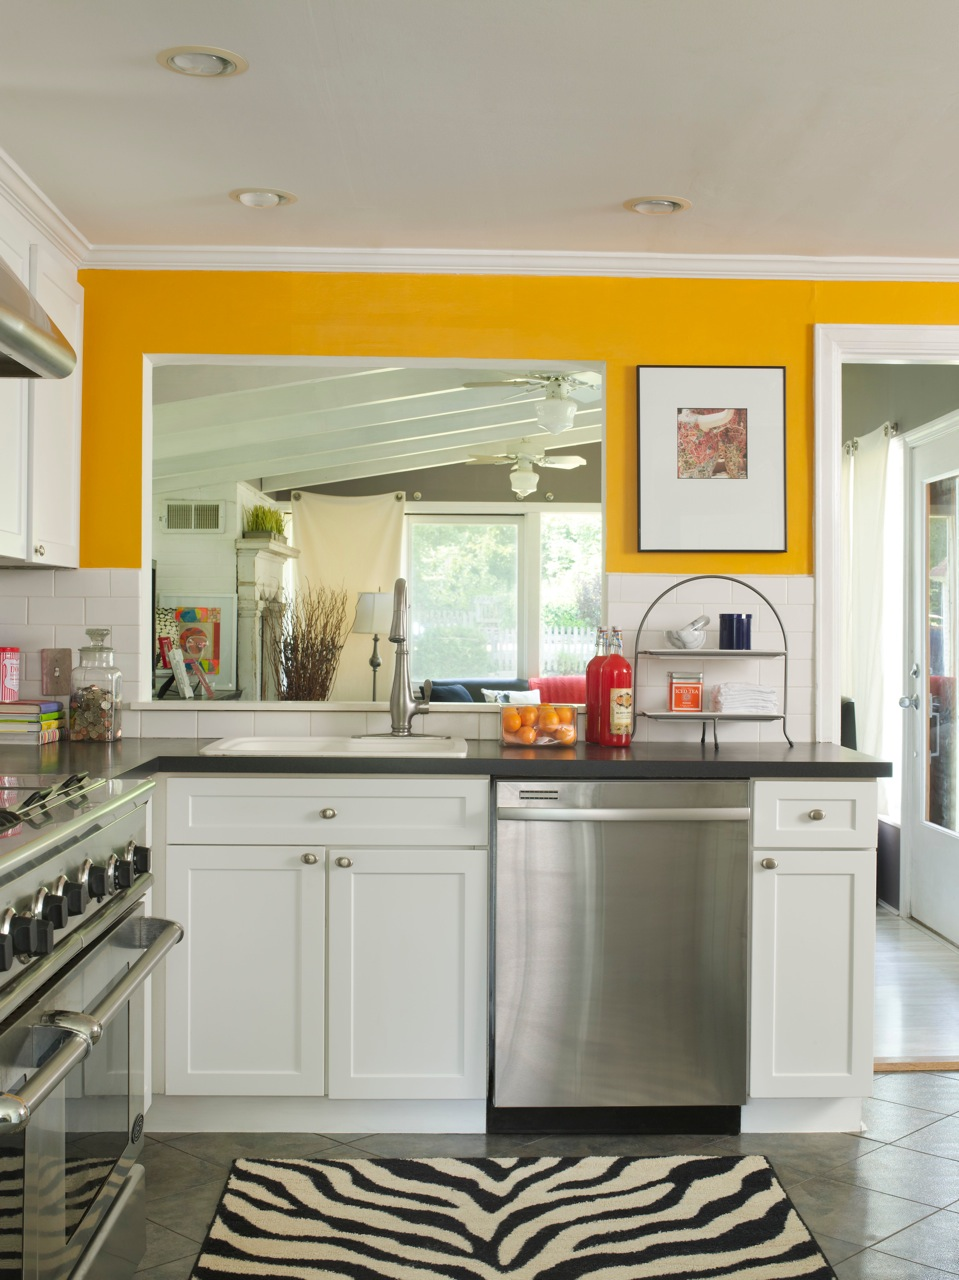 Kitchen color ideas yellow Bright yellow wall paint